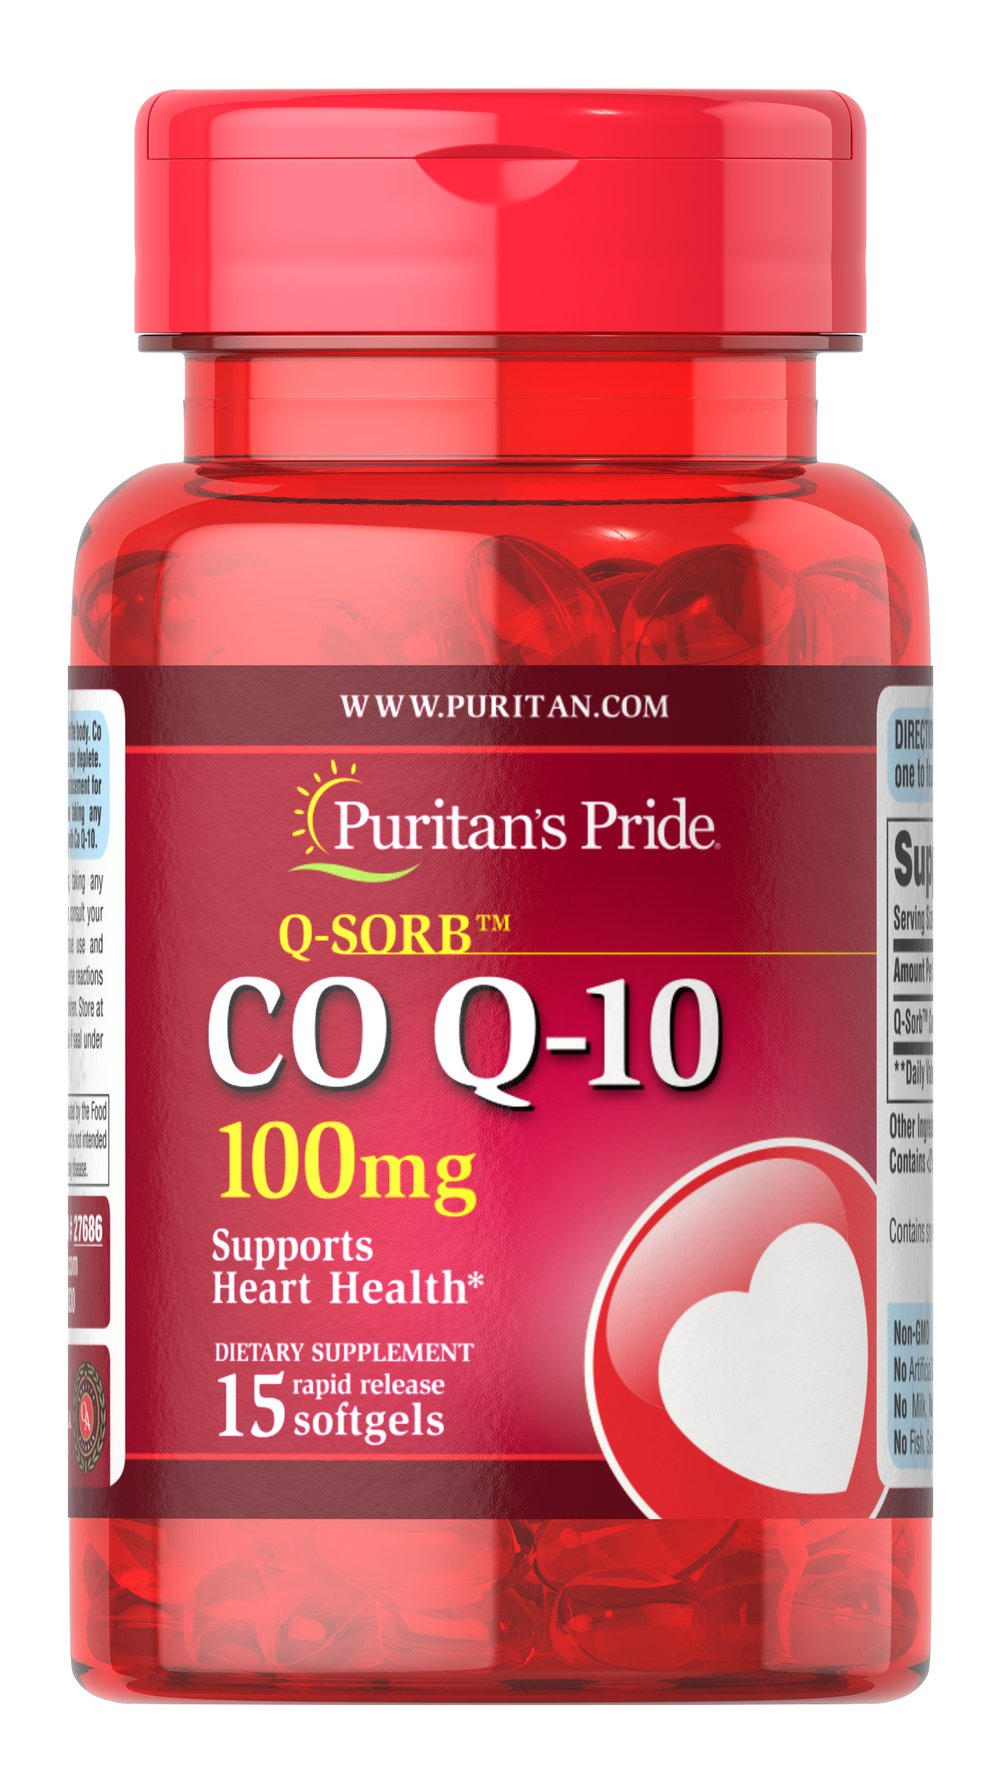 "Co Q-10 100 mg Made with a natural, highly bioavailable form of Co Q 10 — Q-Sorb.™Important for Statin medication users++ — taking Q-Sorb™ Co Q 10 can help replenish what Statin medications can deplete. Coenzyme Q-10 provides powerful antioxidant support.** Good oral health is linked to cardiovascular health; Coenzyme Q10 supports both!** Hermetically sealed in easy to swallow rapid-release softgels for superior absorption. <p style=""margin:0in;margin-bottom:.0001pt;""> &"